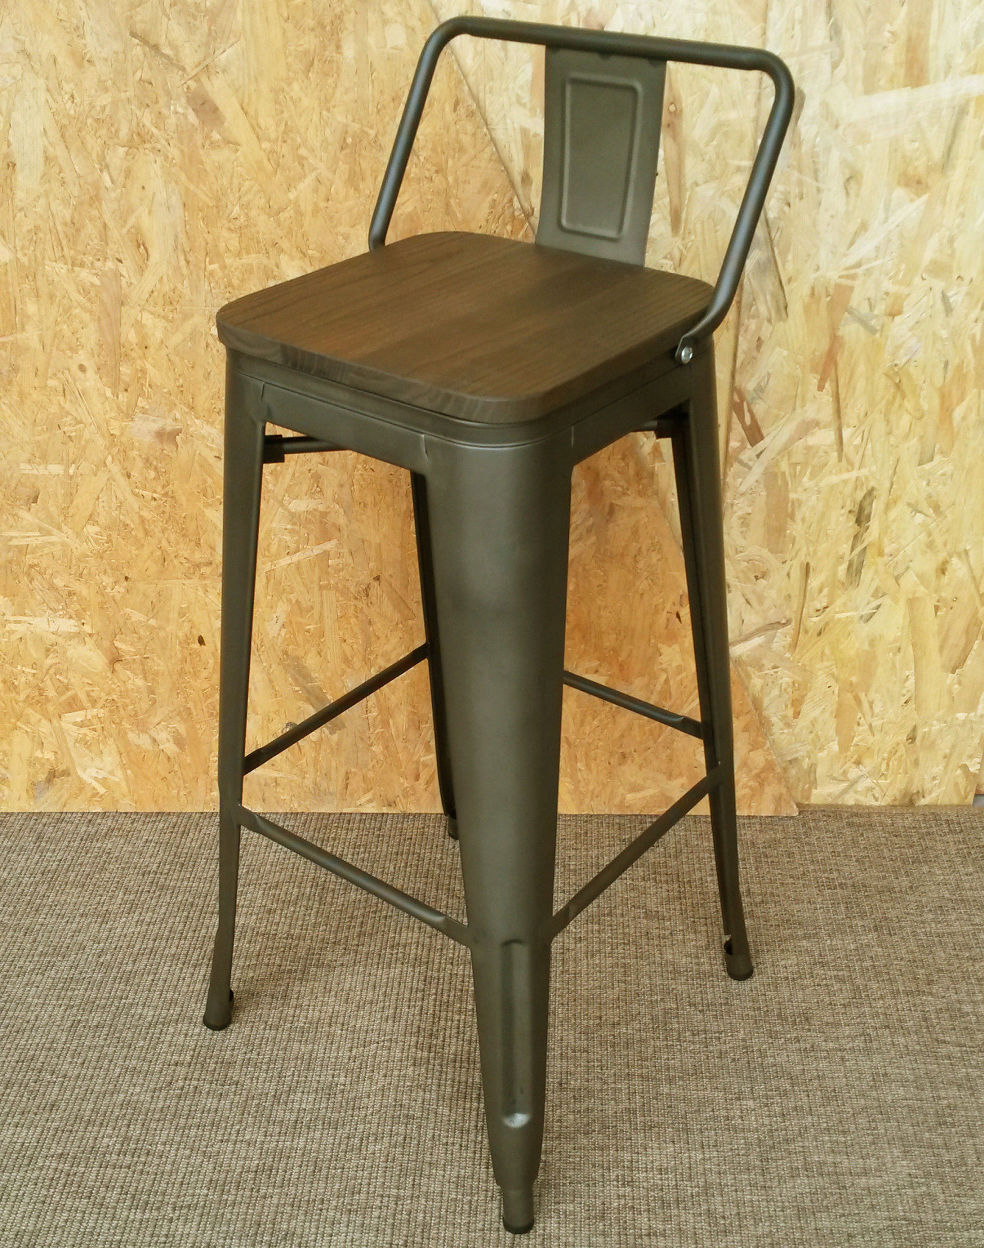 Metal Stools New Tolix Bar Stool Tarnished Metal Wooden Seat Retro French Cafe